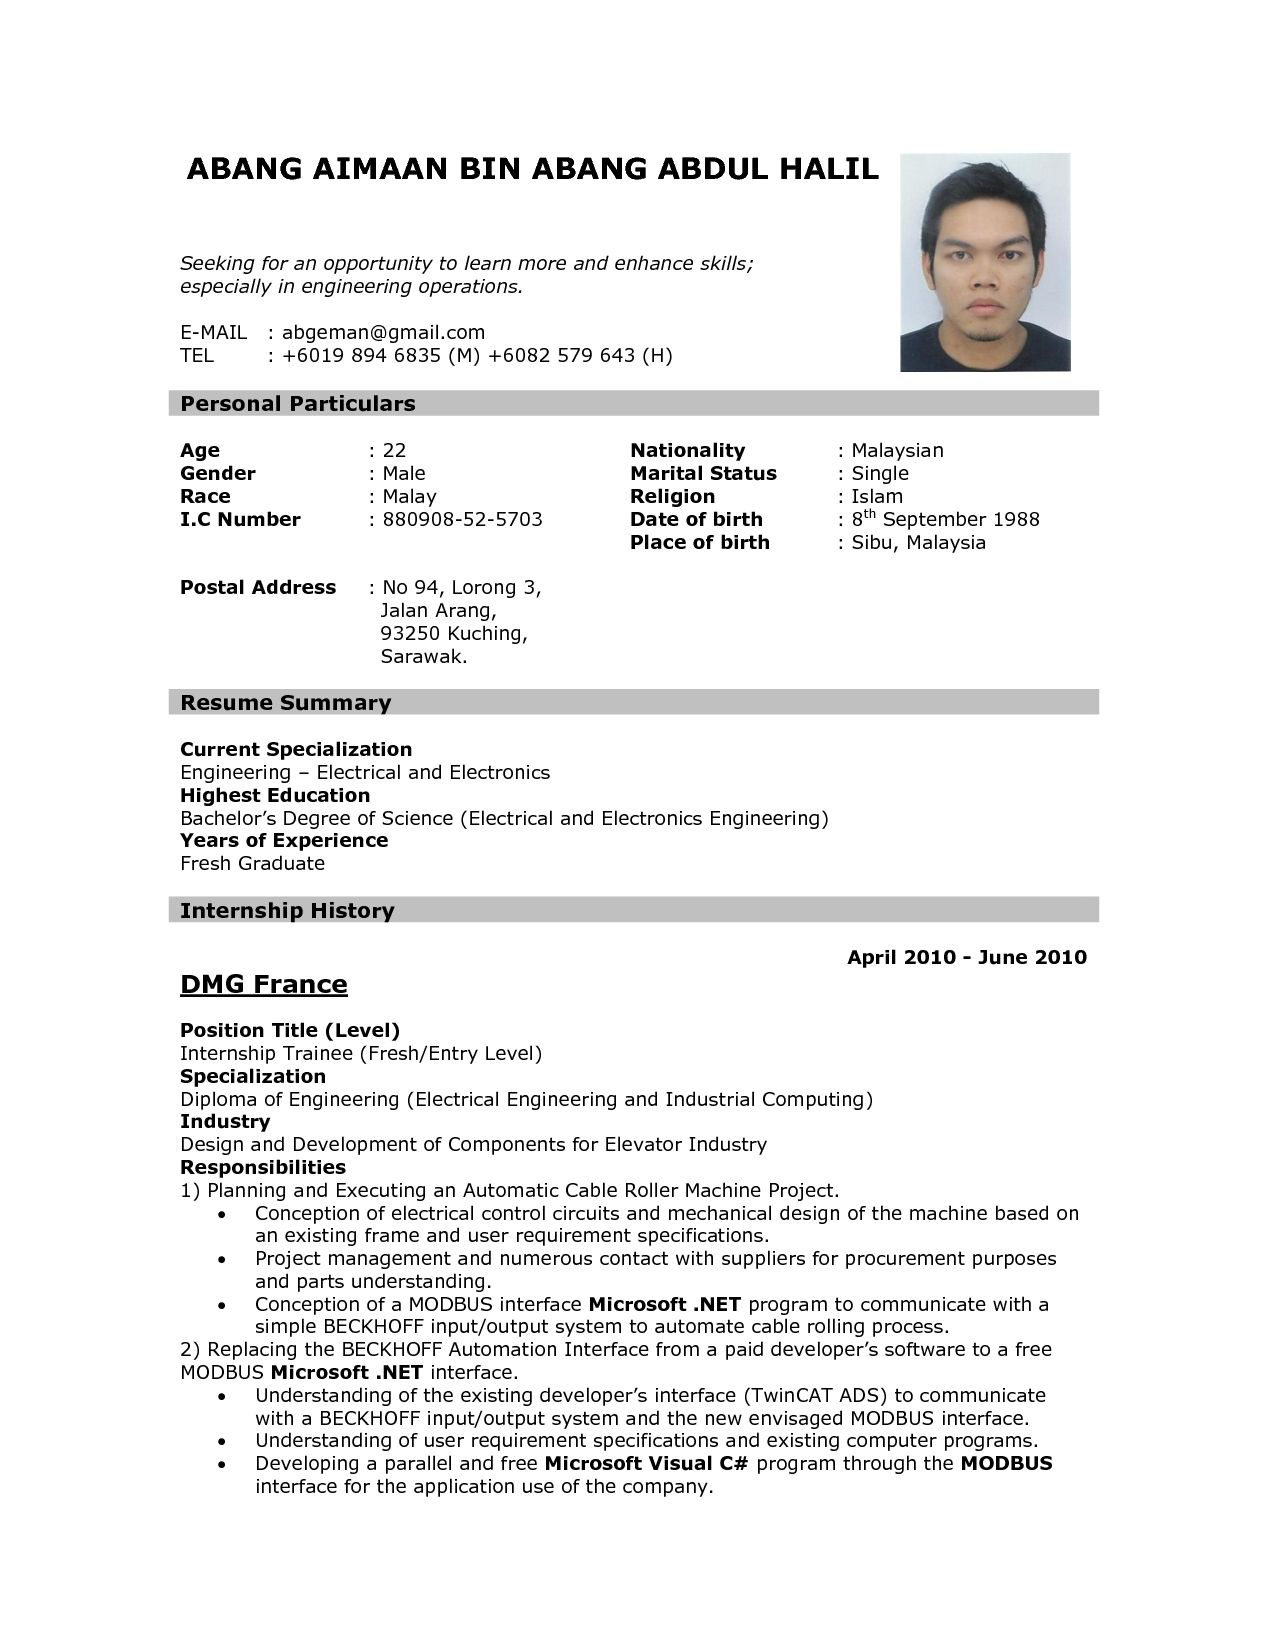 Charming Format Of Resume For Job Application To Download Data Sample Resume The  Sample Resume For Applying